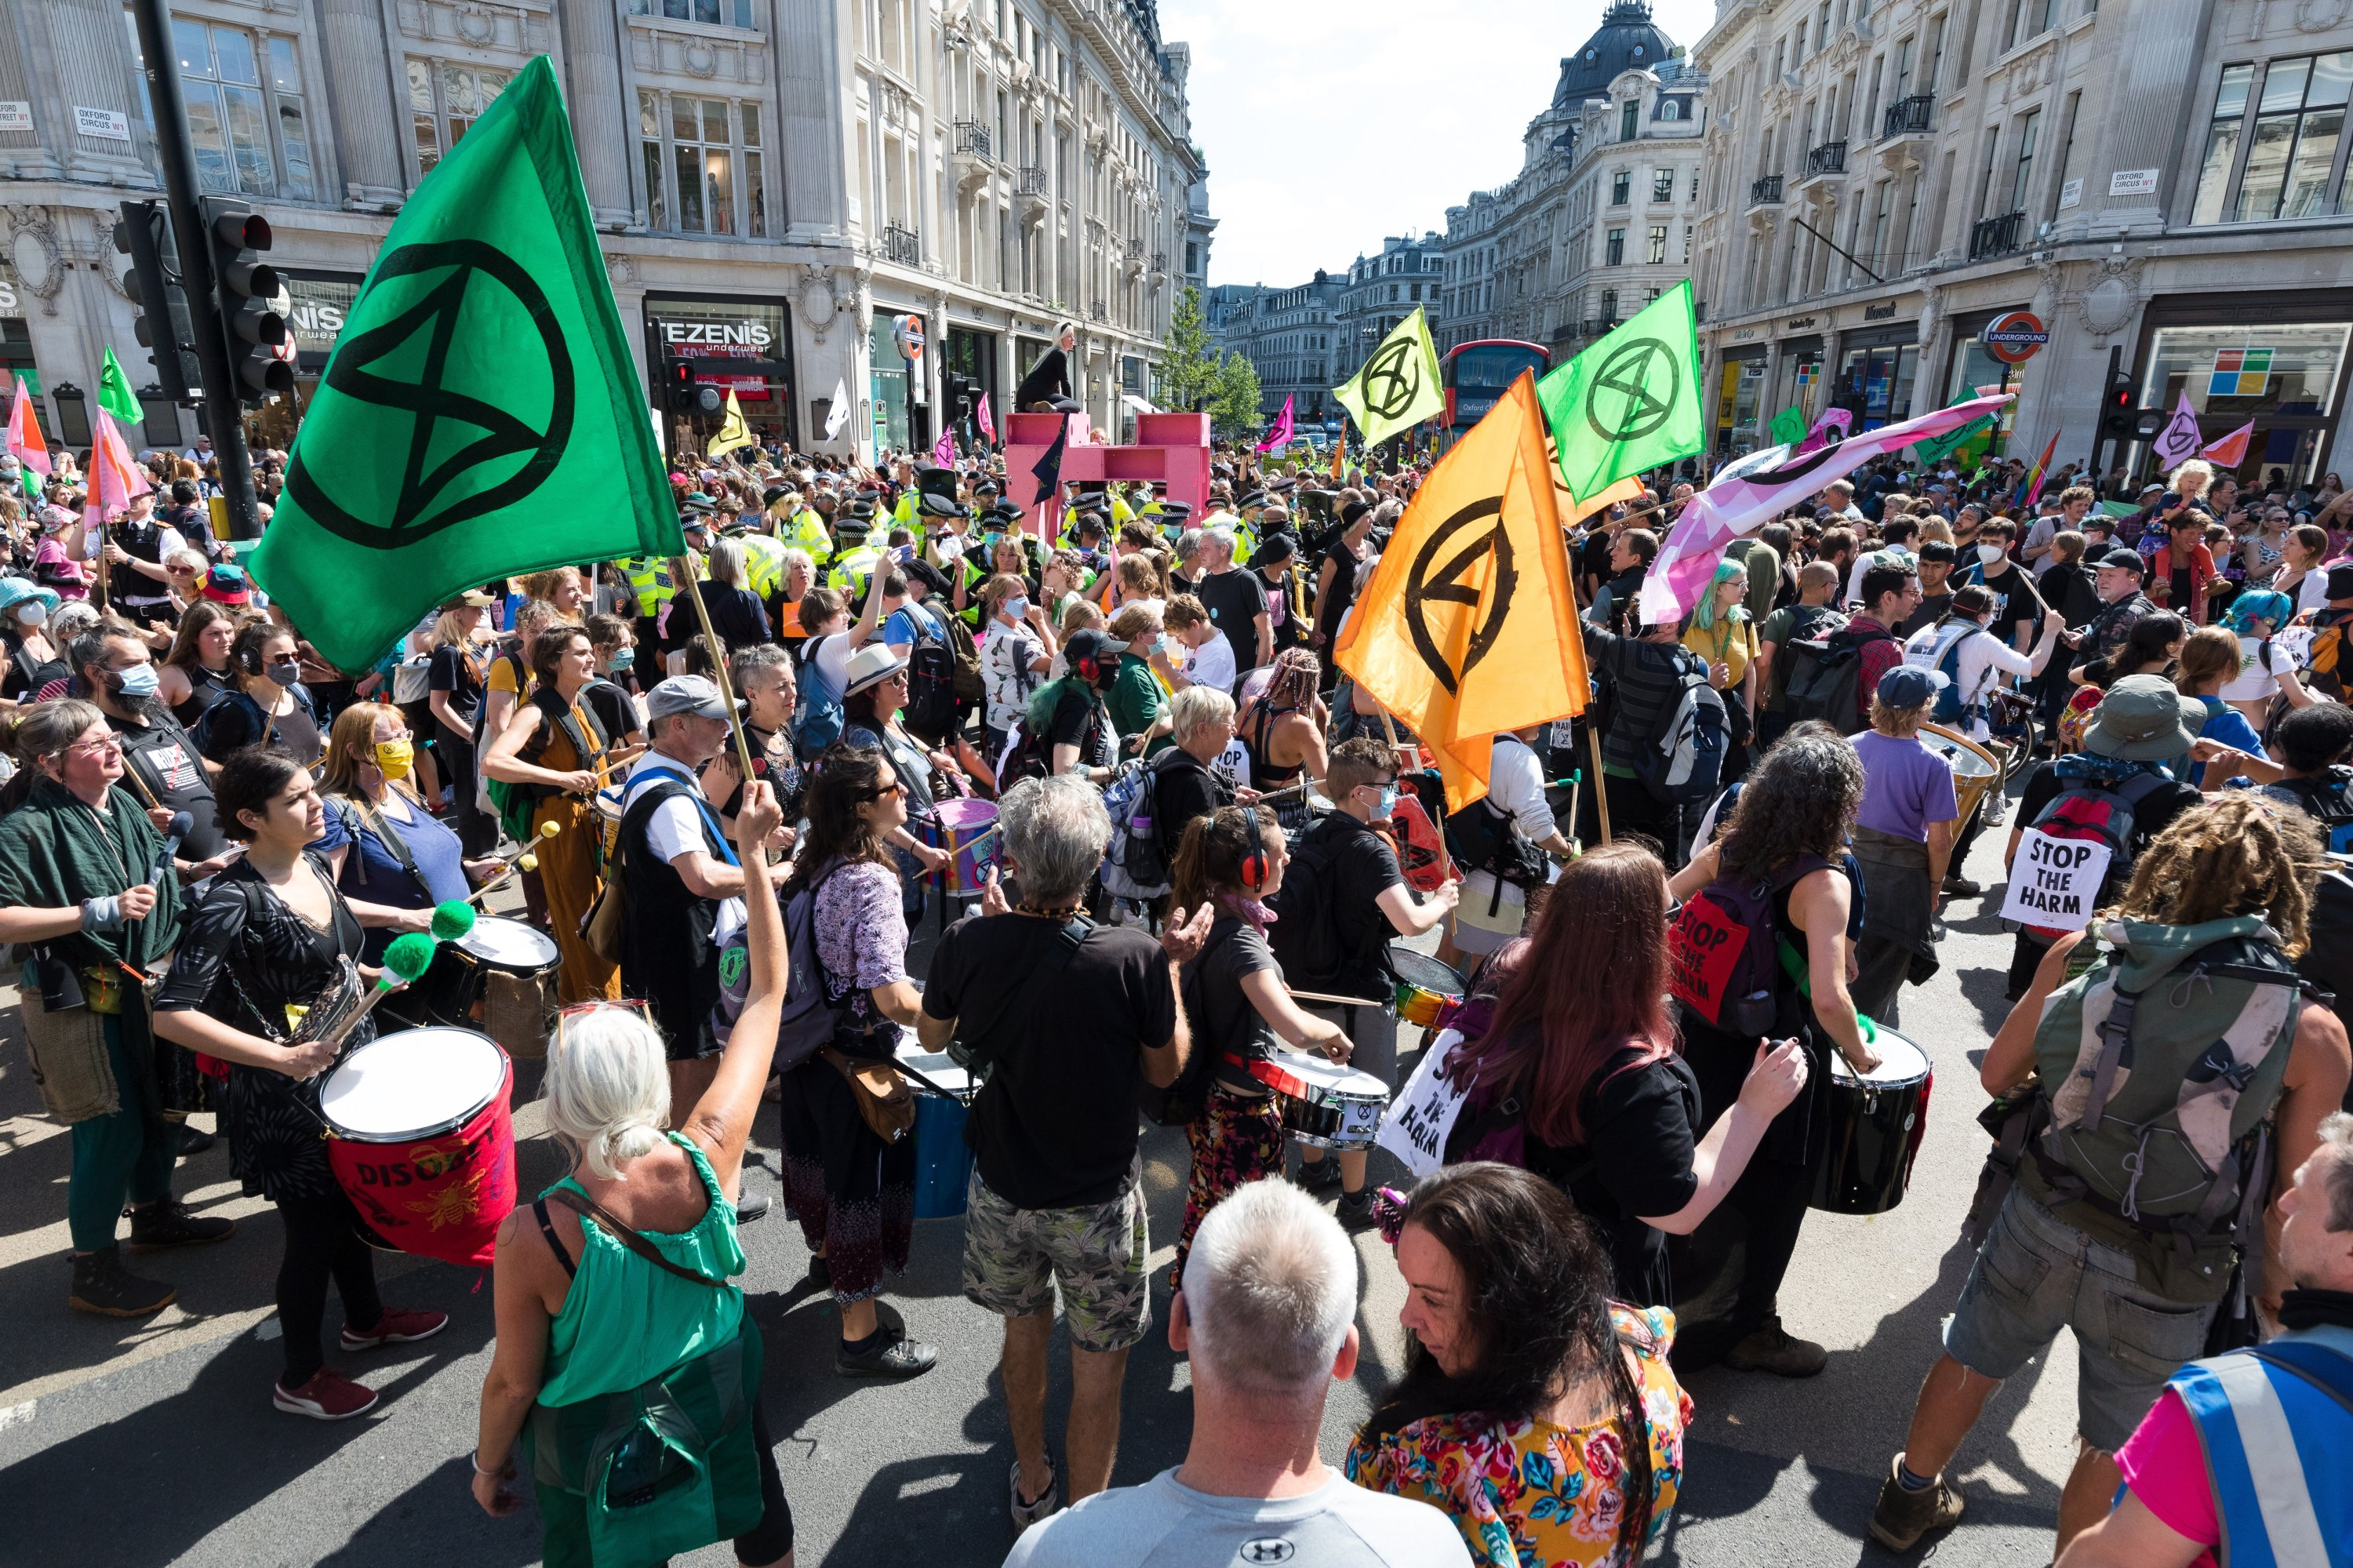 Extinction Rebellion demonstrators protest in the road in Oxford Circus during an Extinction Rebellion climate activists' protest in London, Britain, Aug. 25, 2021. (EPA Photo)